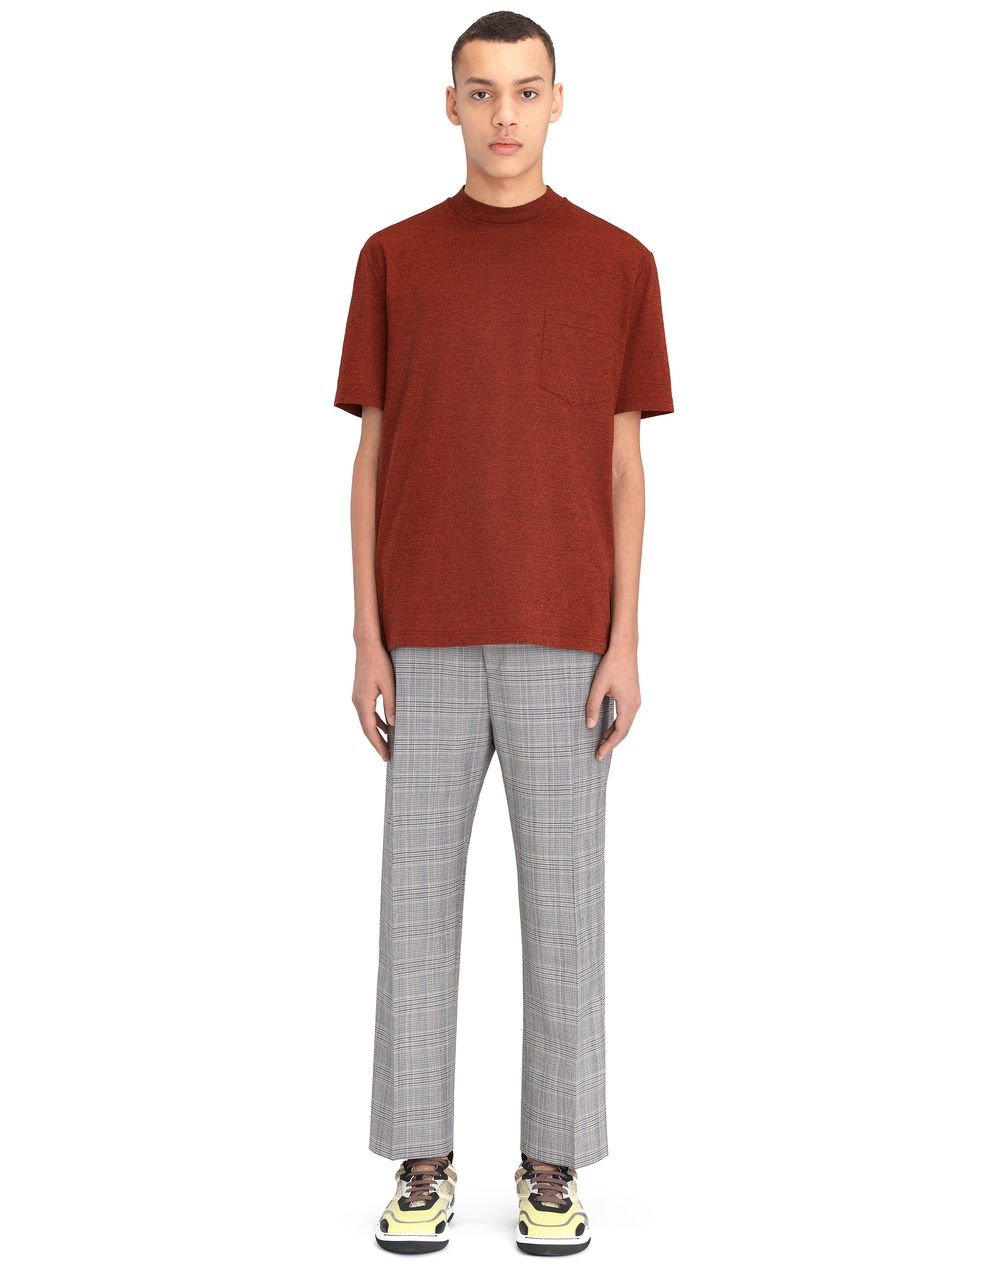 RED FLECKED JERSEY T-SHIRT - Lanvin